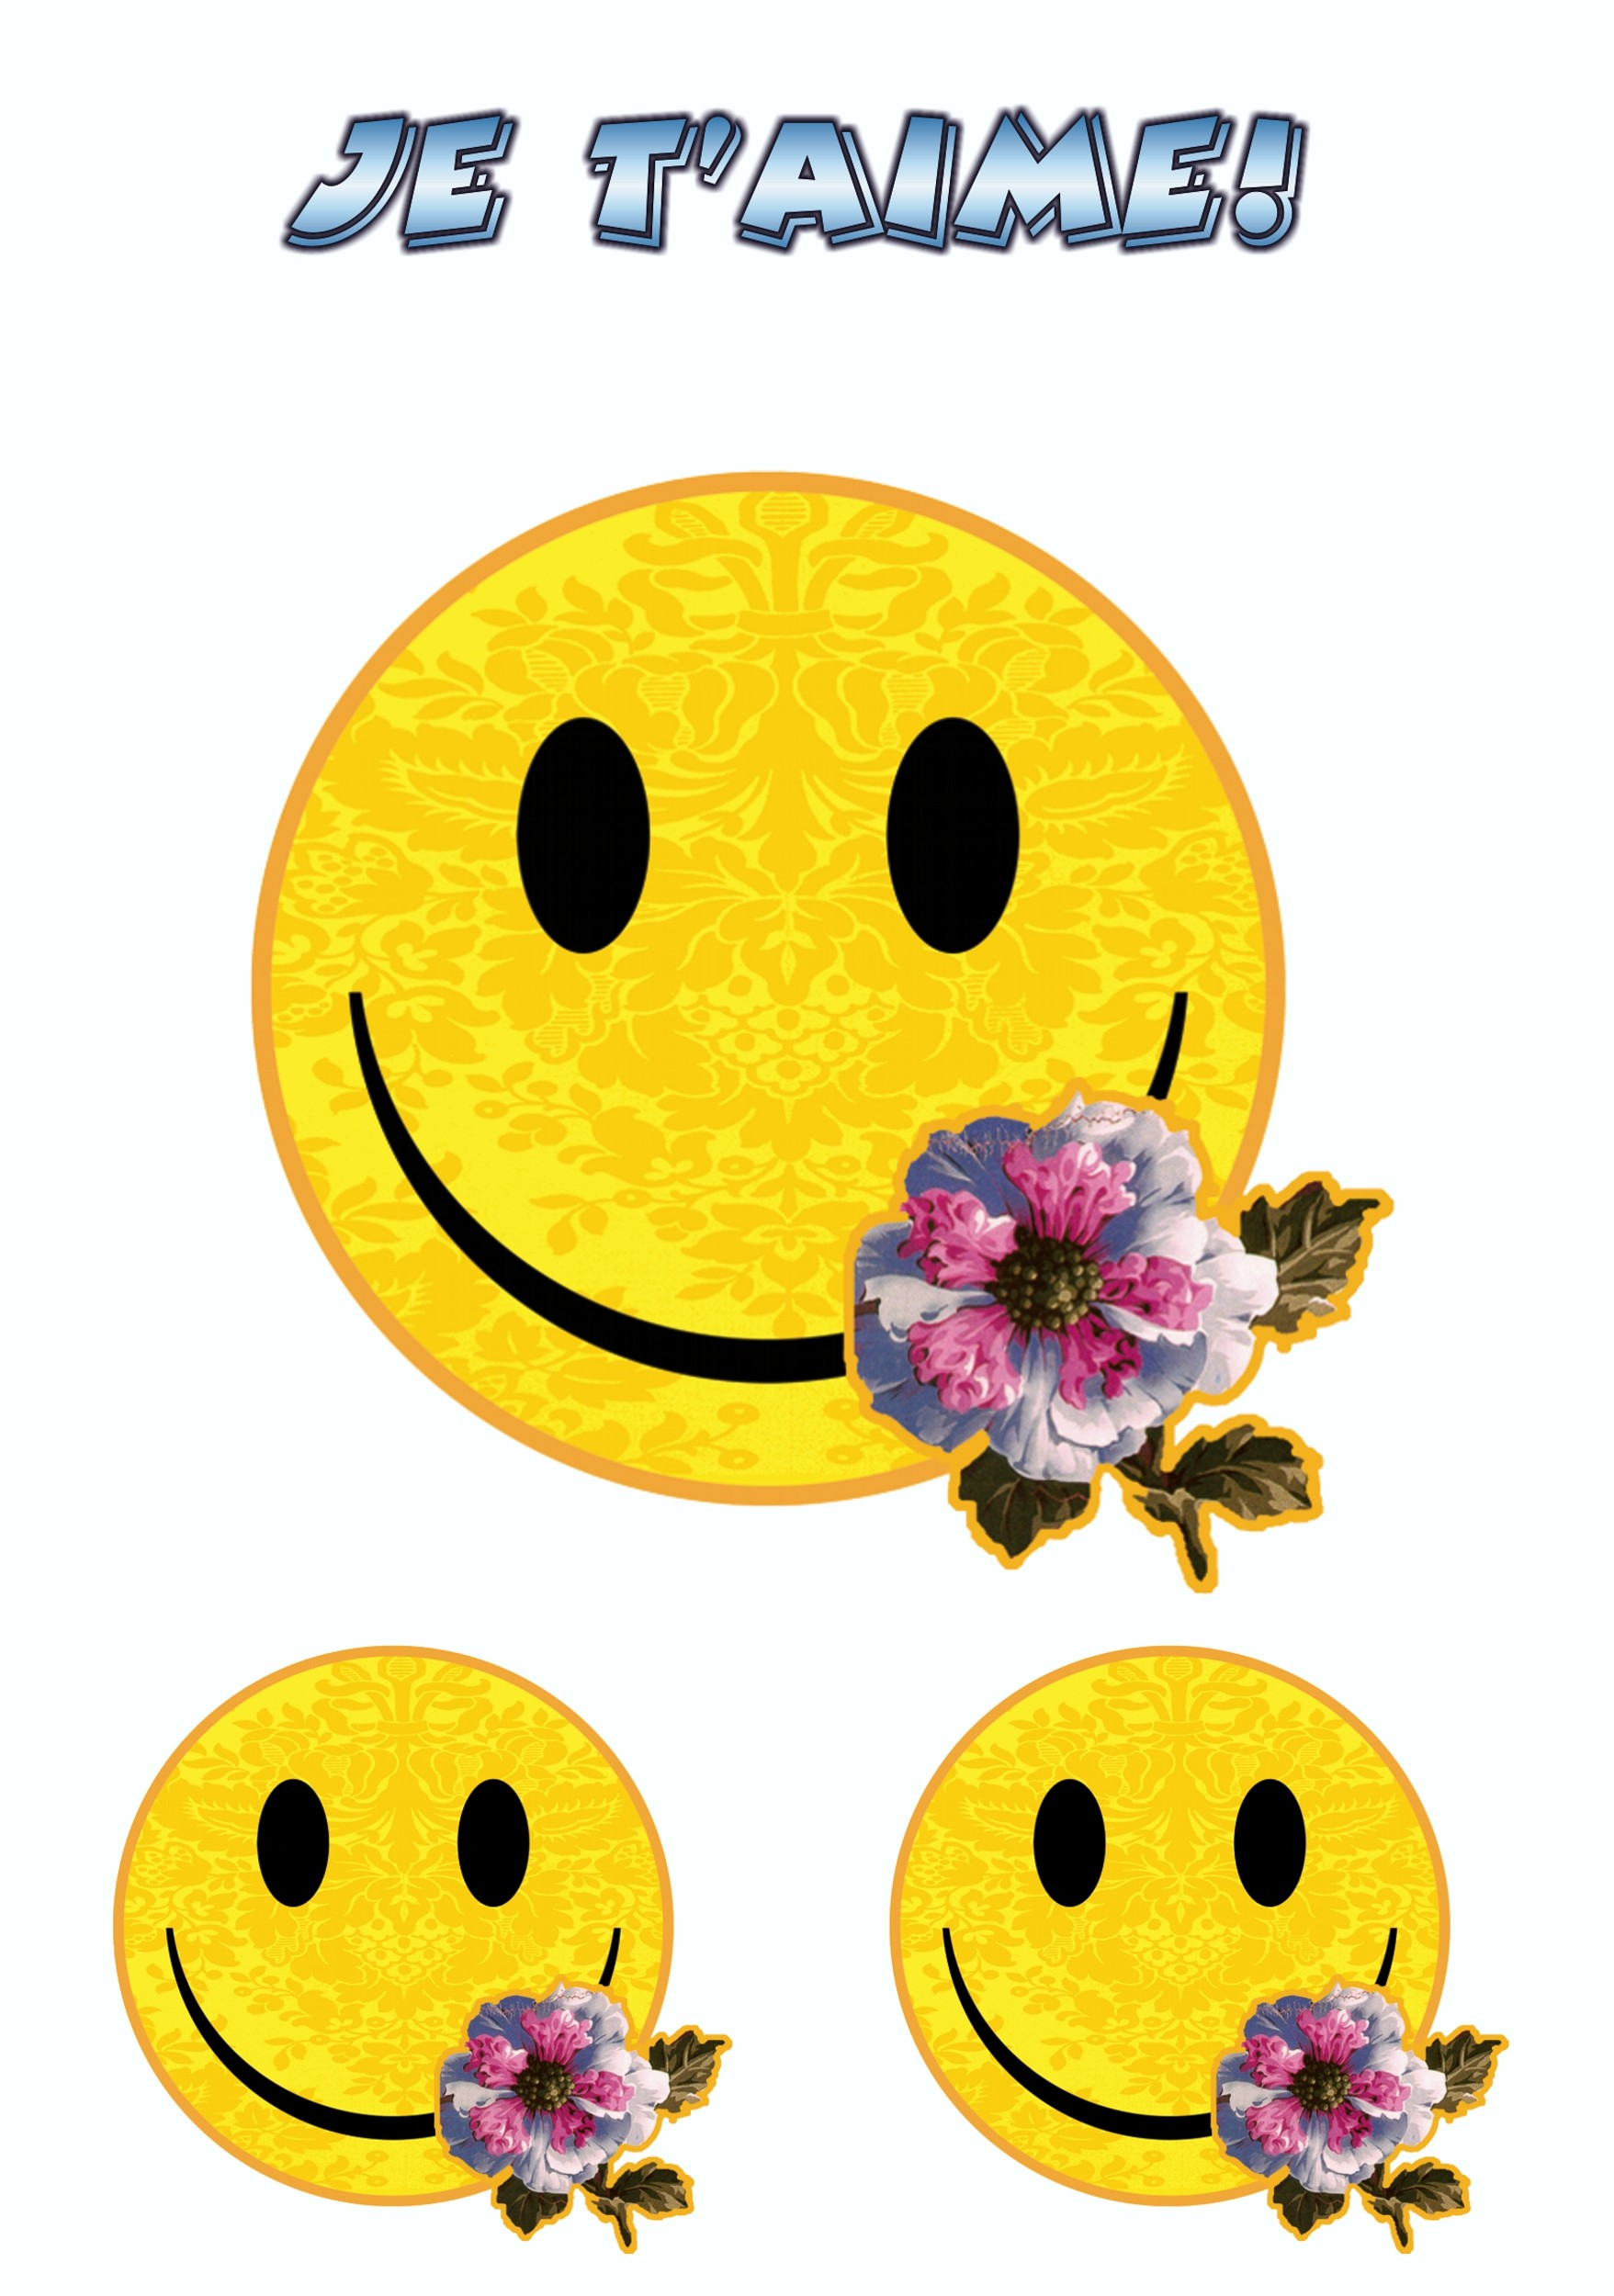 Sticker Smily Je t´aime! set of 3 150 x 105 mm